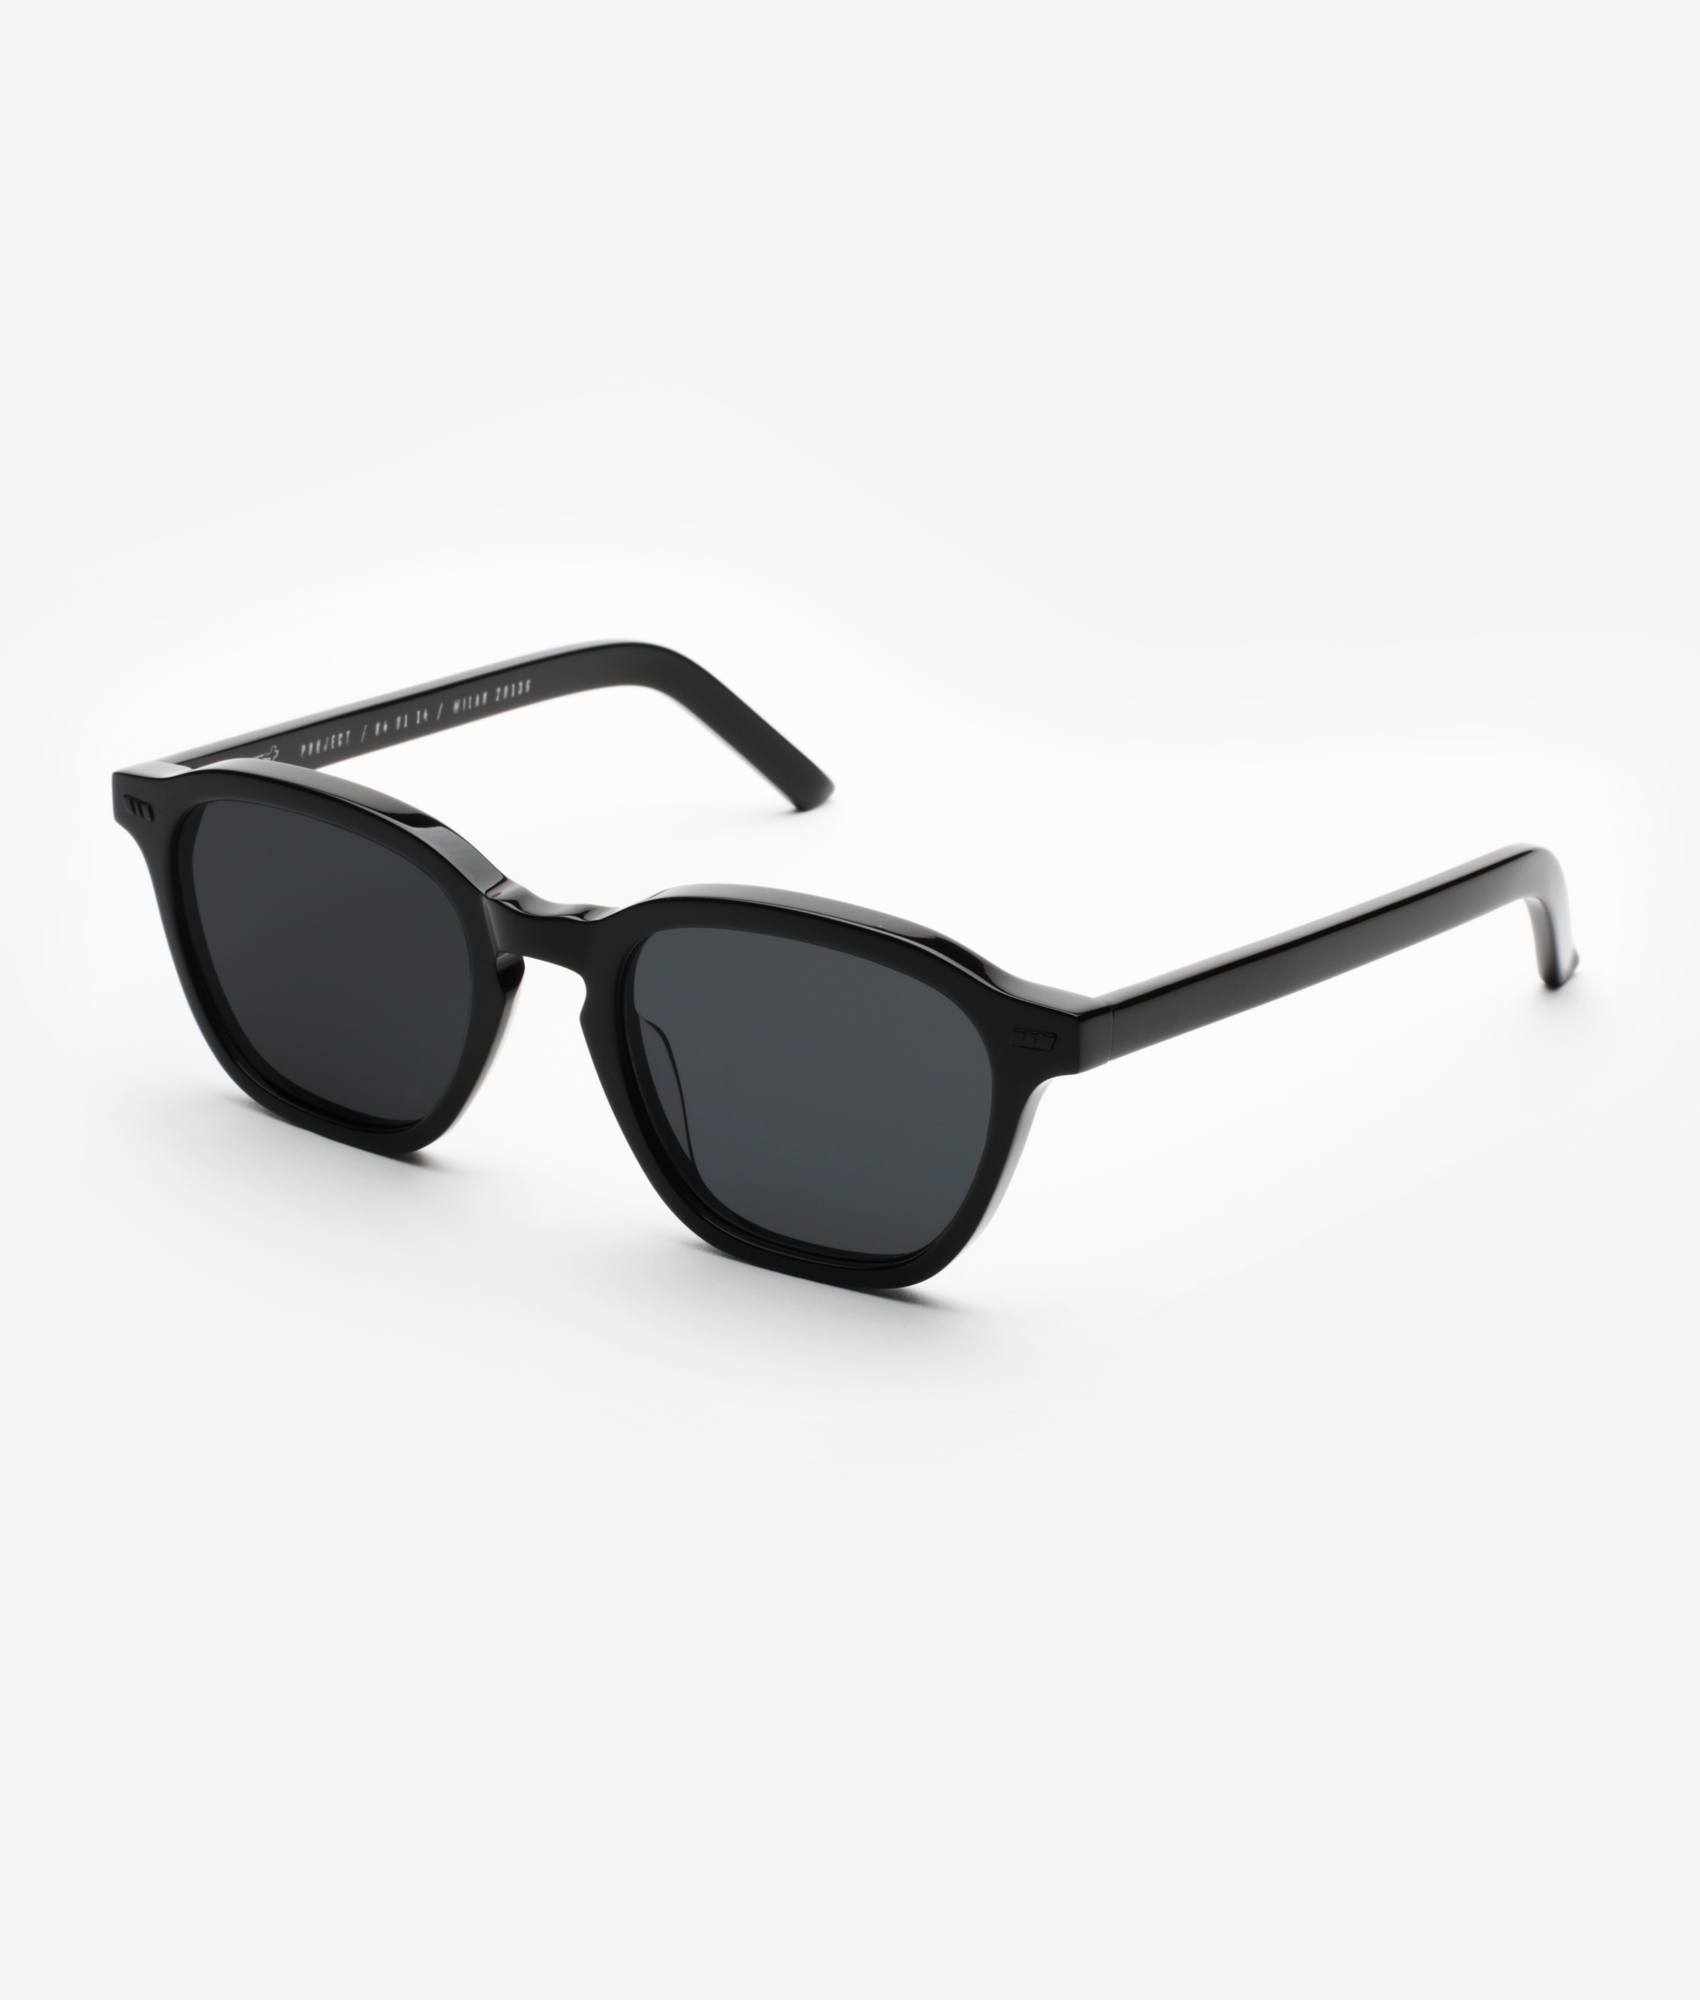 Galit Black Gast Sunglasses